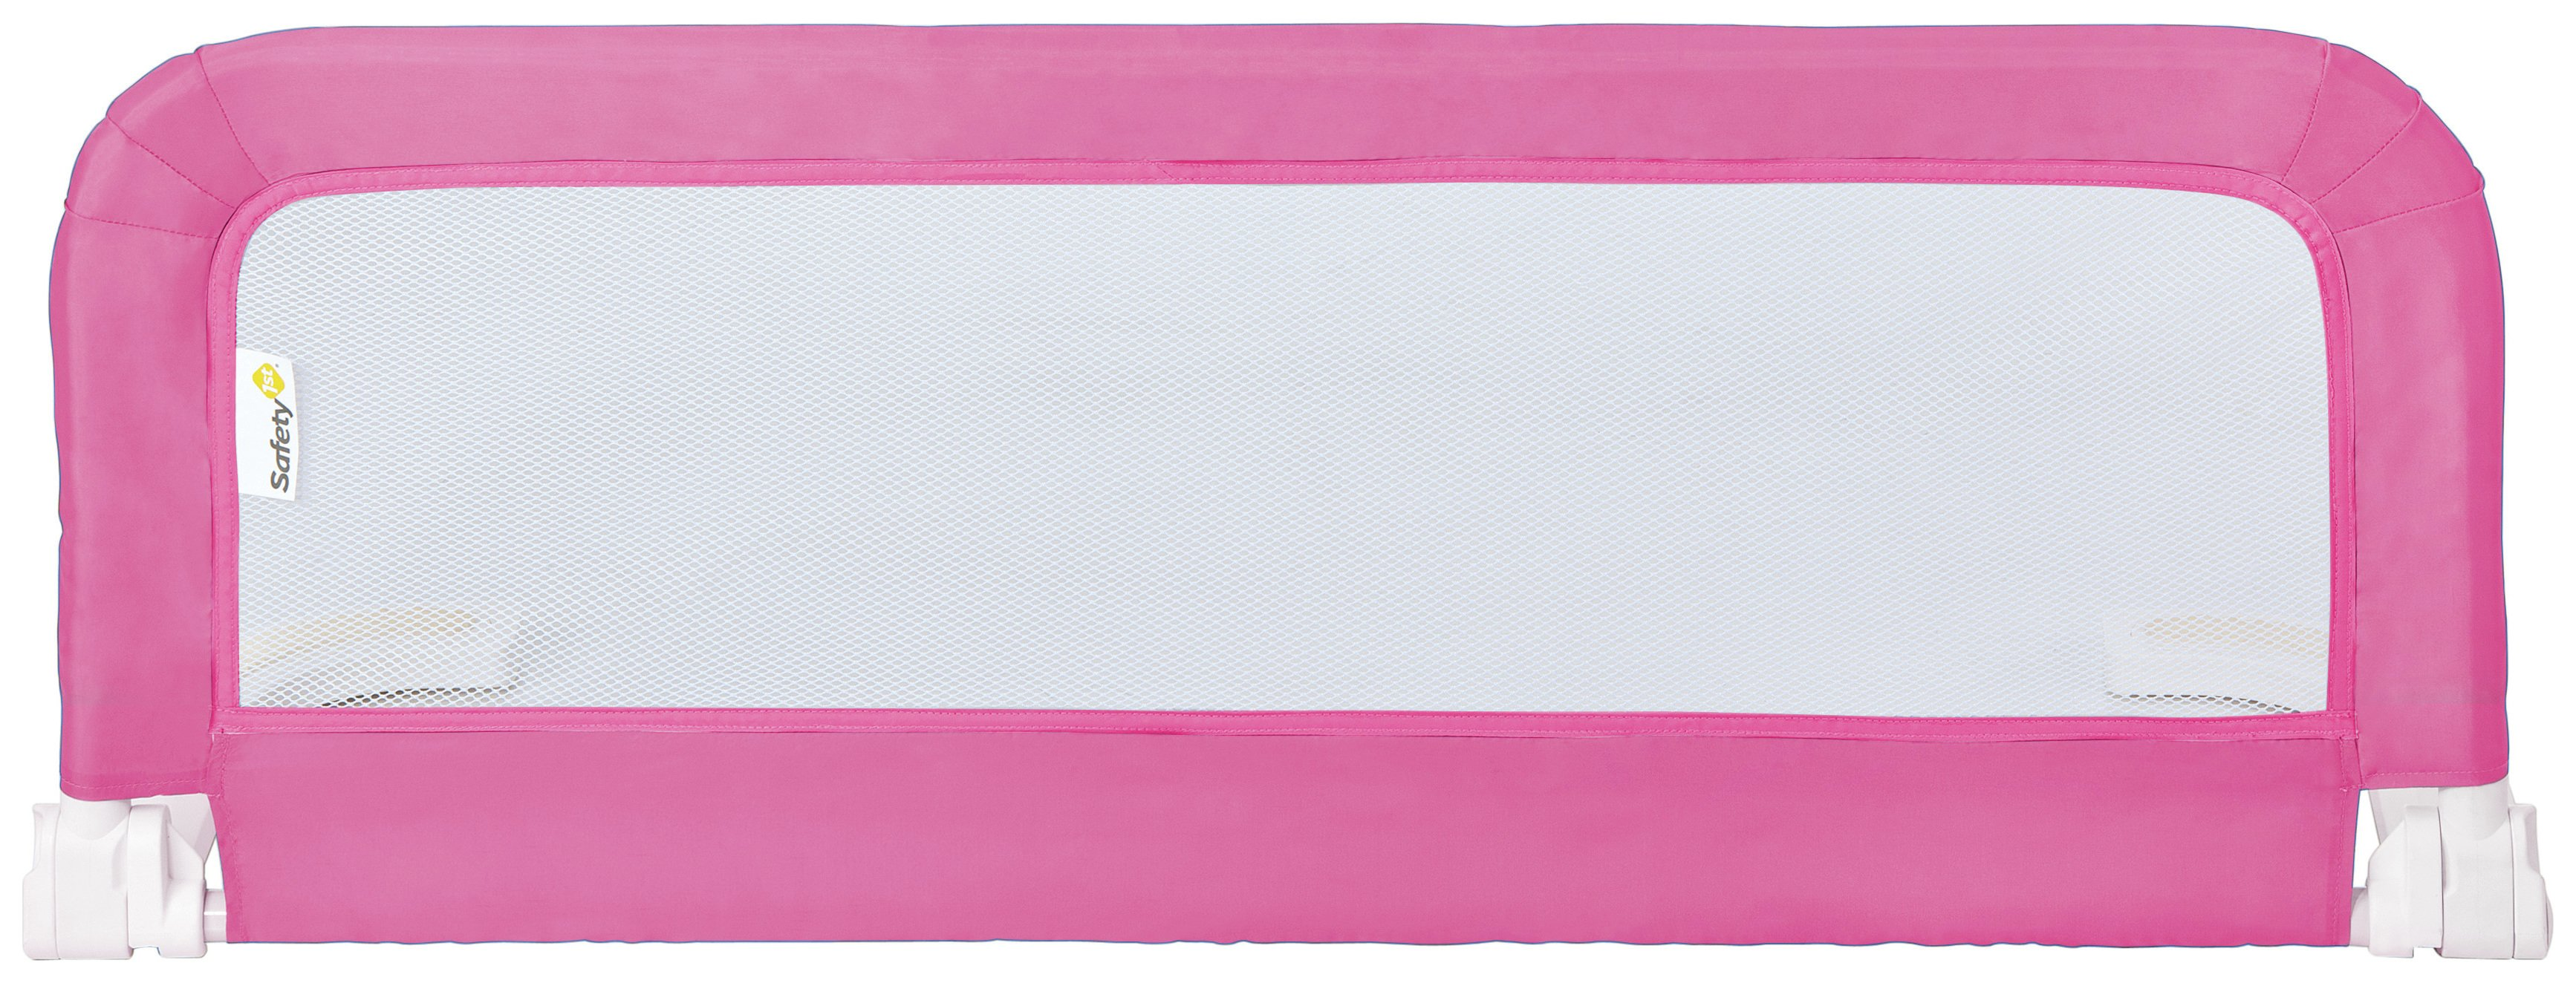 Safety 1st Portable Bed Rail - Pink